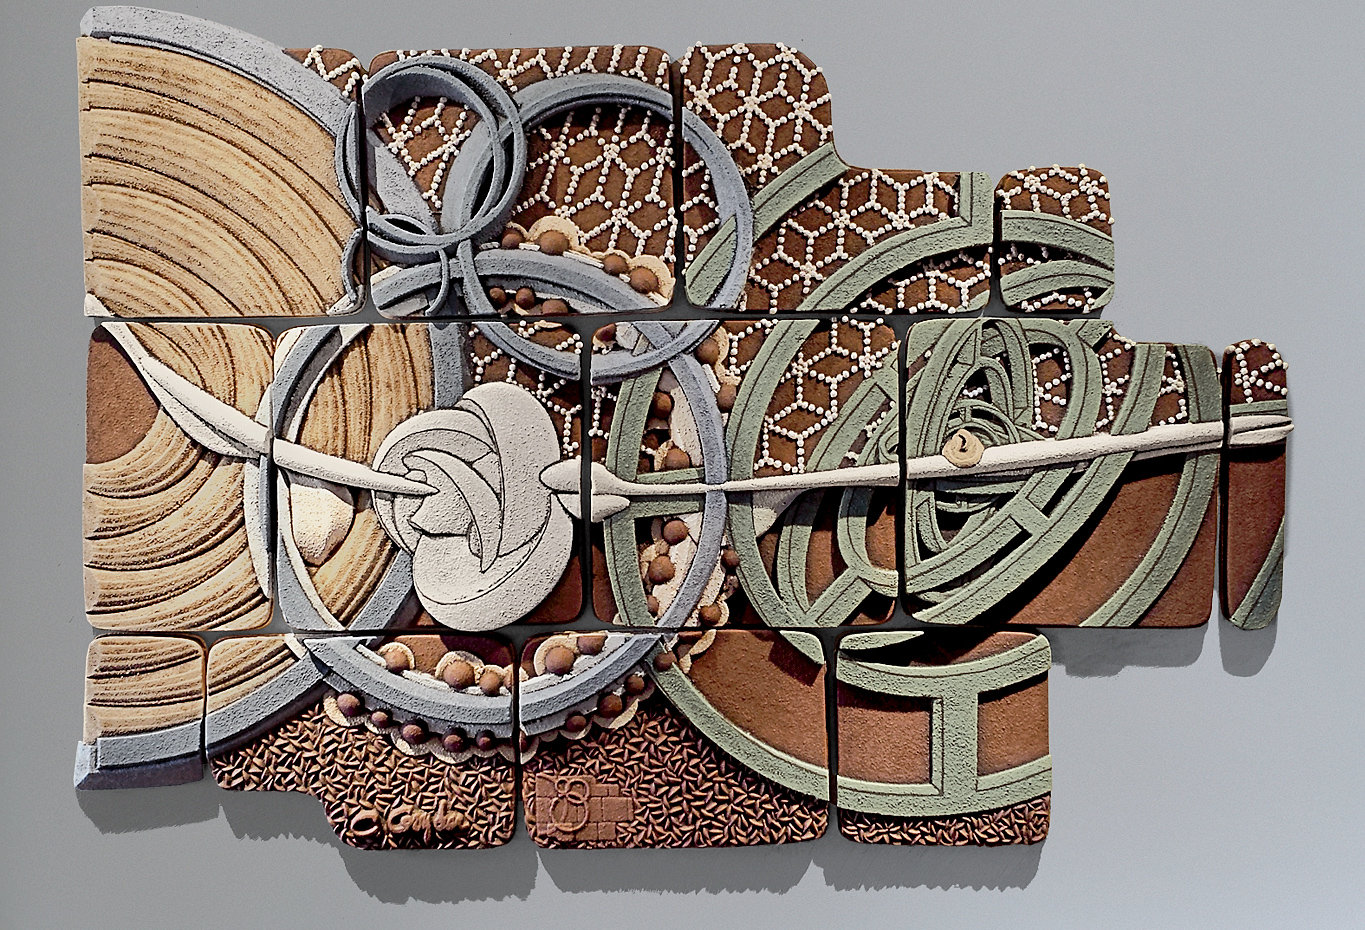 Equisymbrium No 2 By Christopher Gryder Ceramic Wall Sculpture Artful Home